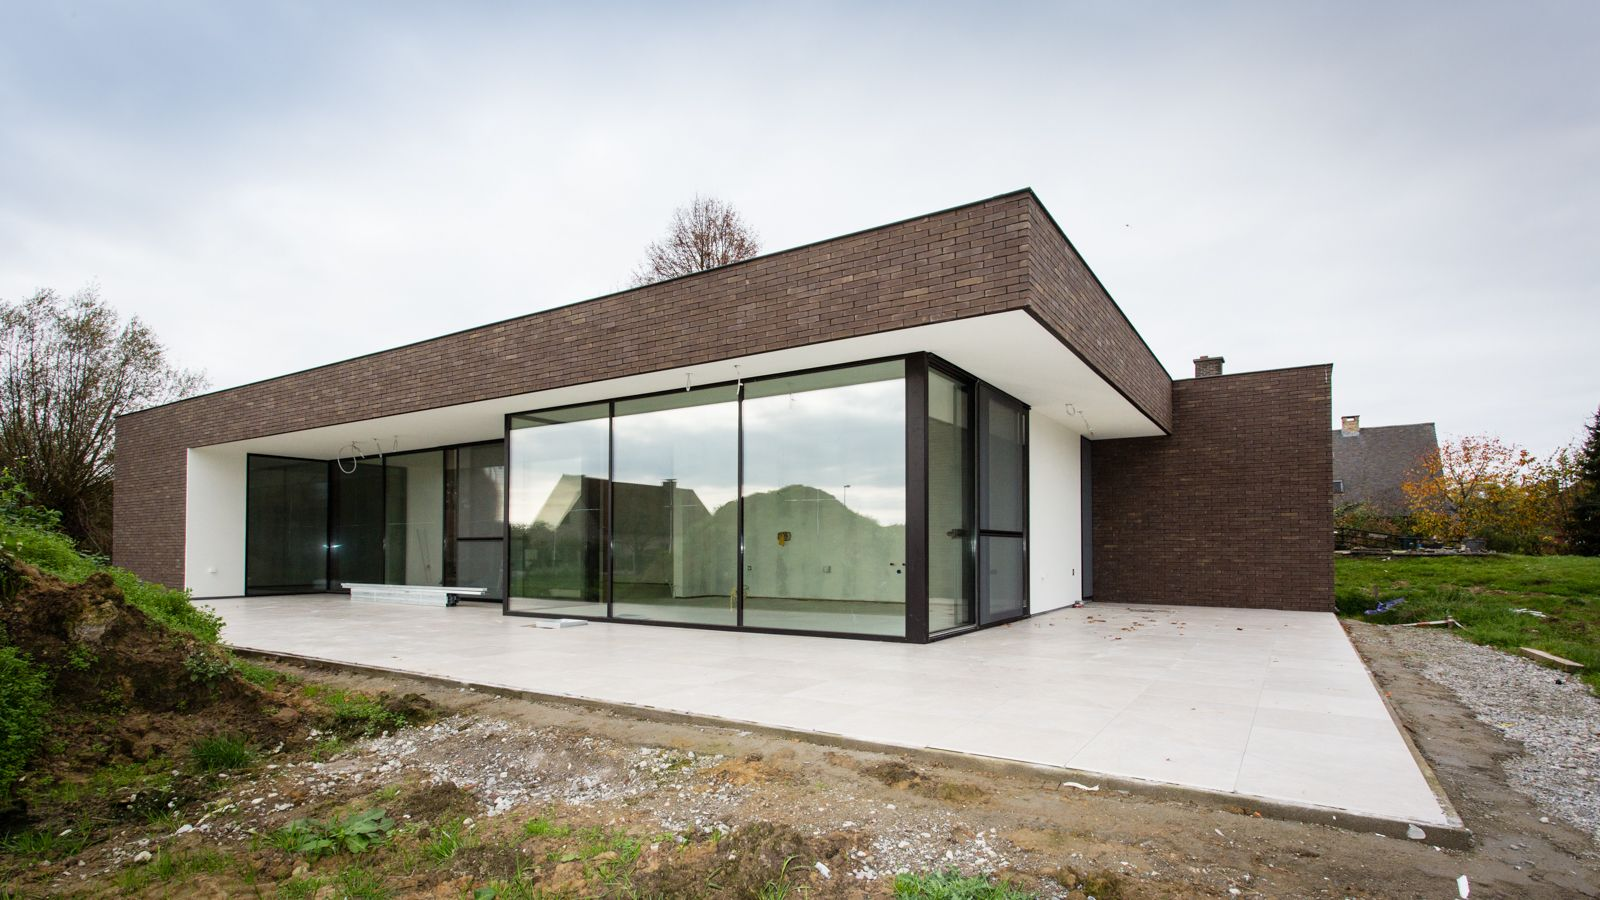 Vande moortel facing bricks septem 8025 shaping places for Moderne bungalow architectuur